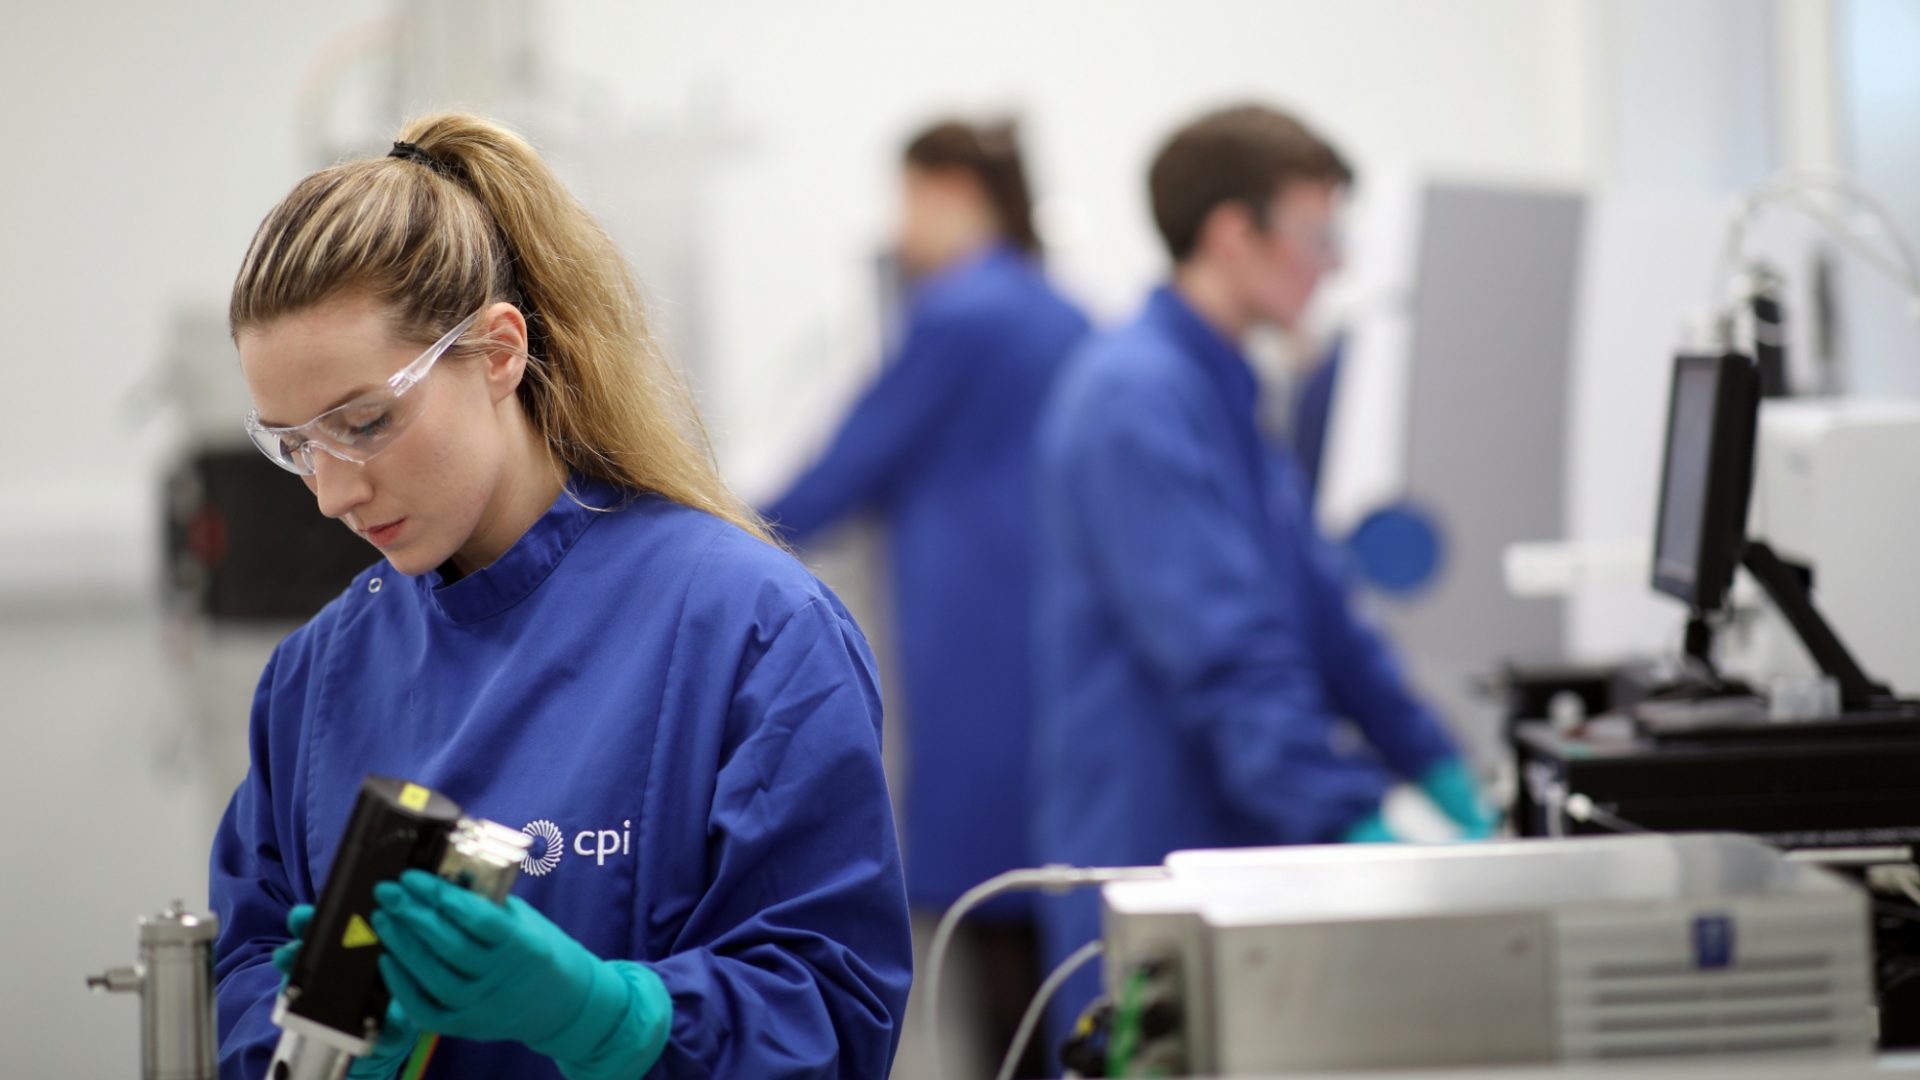 A photo of CPI staff working in a biological laboratory